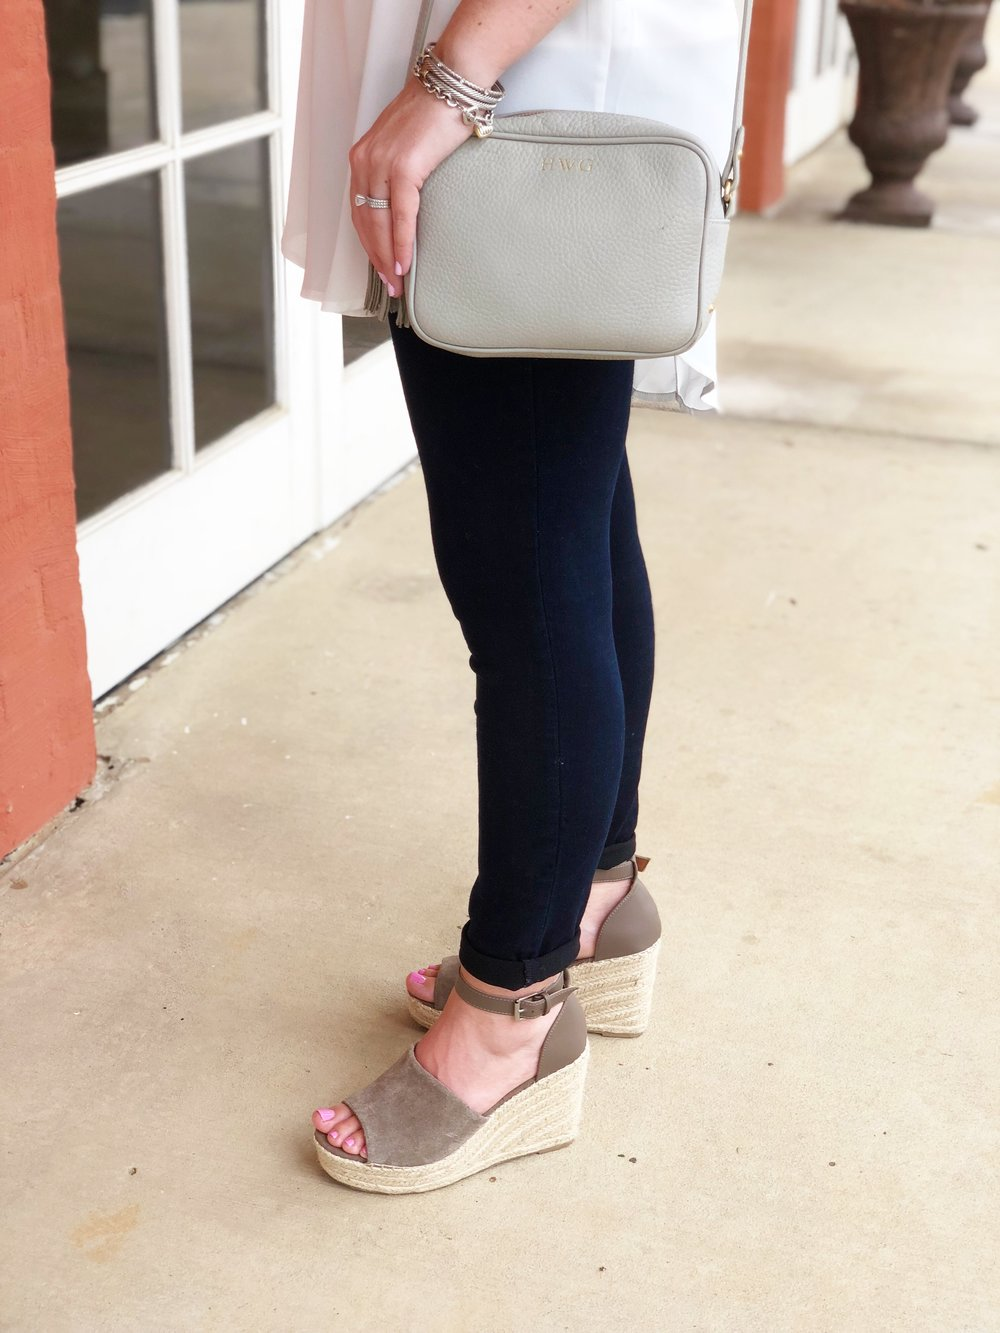 Outfit Details-   Tunic    (on sale for 33% off!)  |   Jeggings   |   Wedges   |  Bag